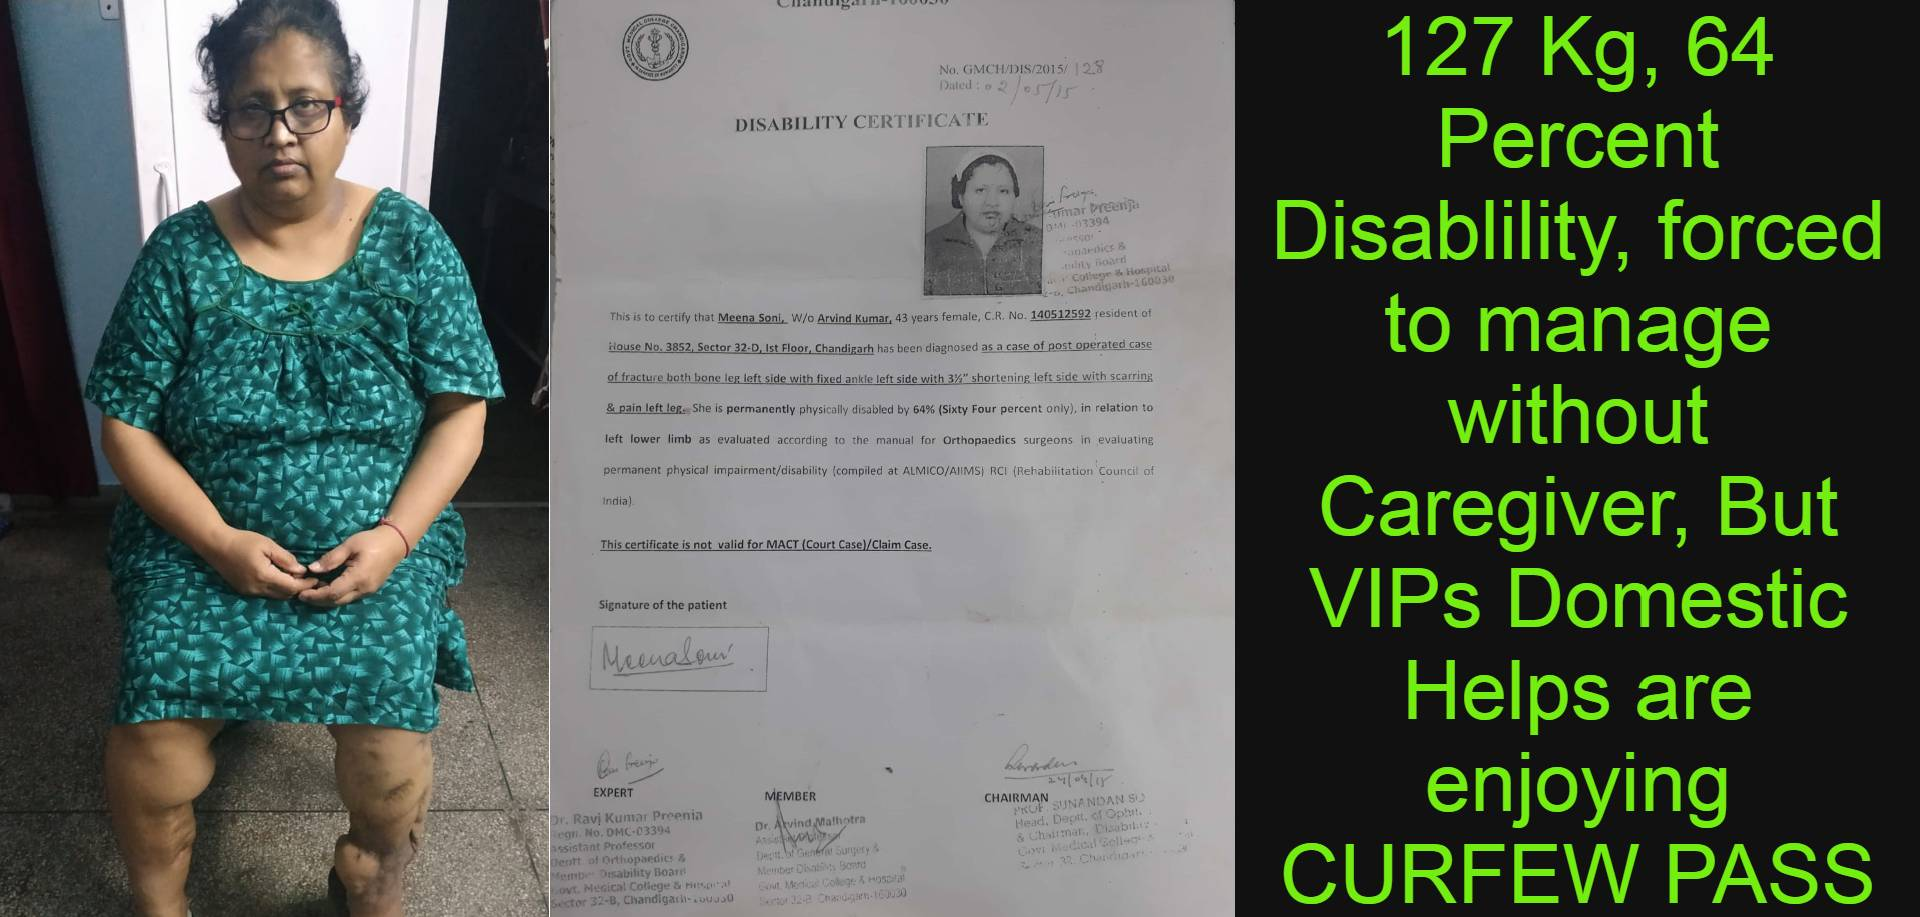 127 kg, 64 percent handicapped, Sheerly ignored by Chandigarh Administration on her appeals